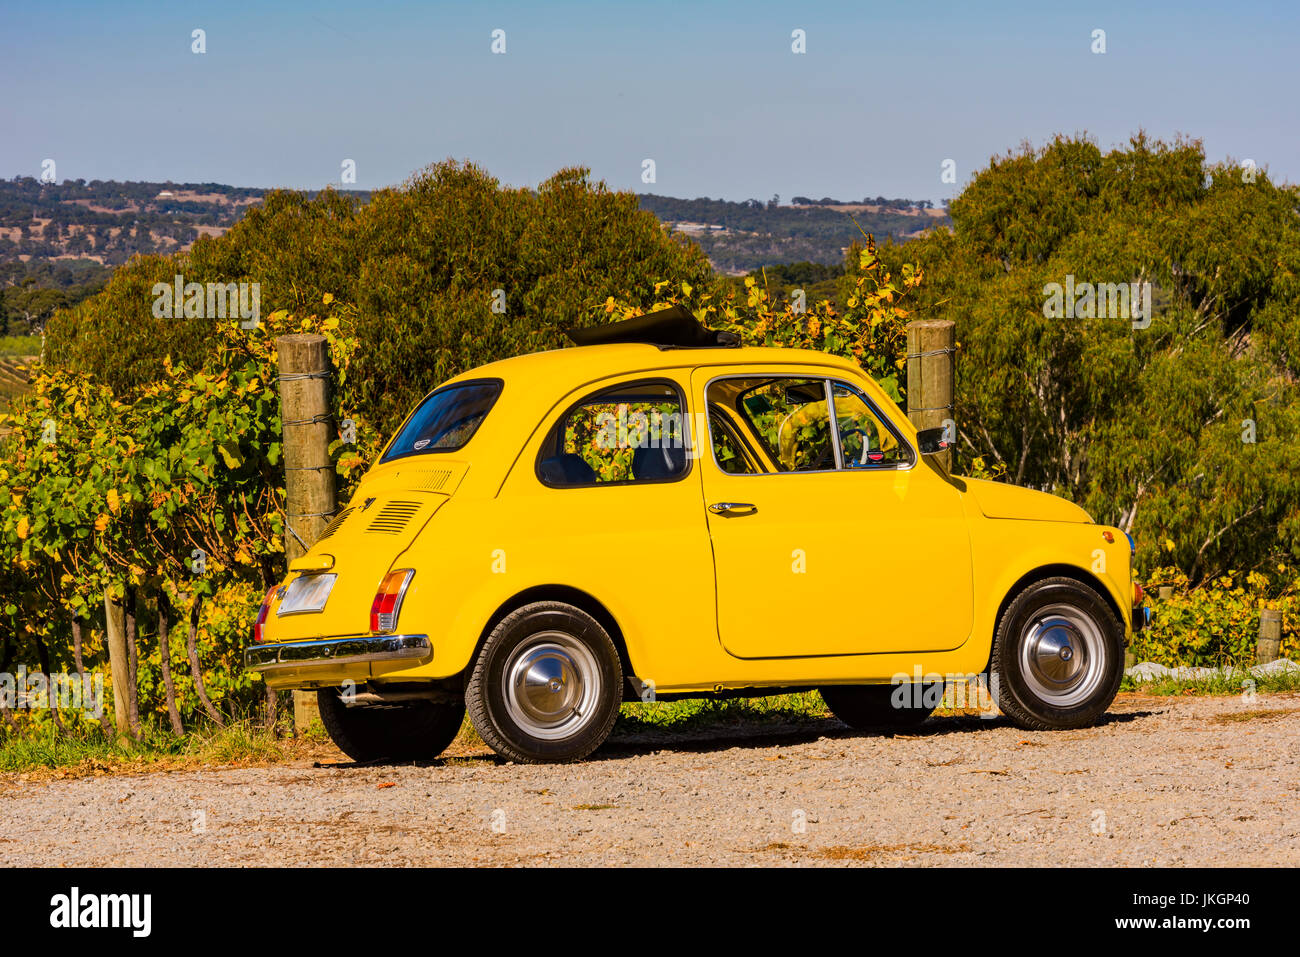 Yellow car parked up in front of a row of grapevines in the Adelaide Hills in South Australia - Stock Image